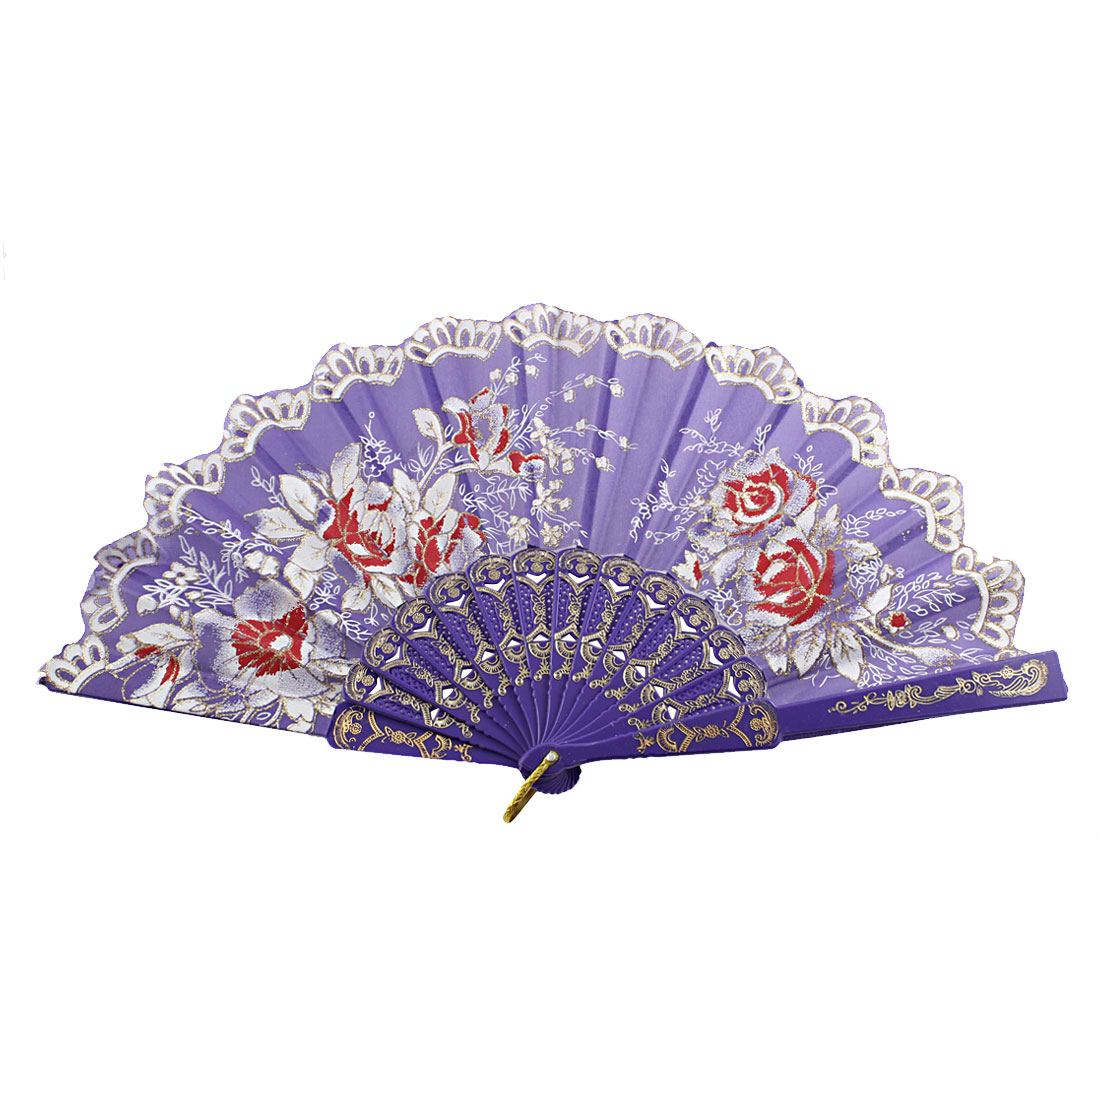 D Ring Adorn Ribs Flower Leaf Pattern Dancing Handhelp Hand Fan Purple